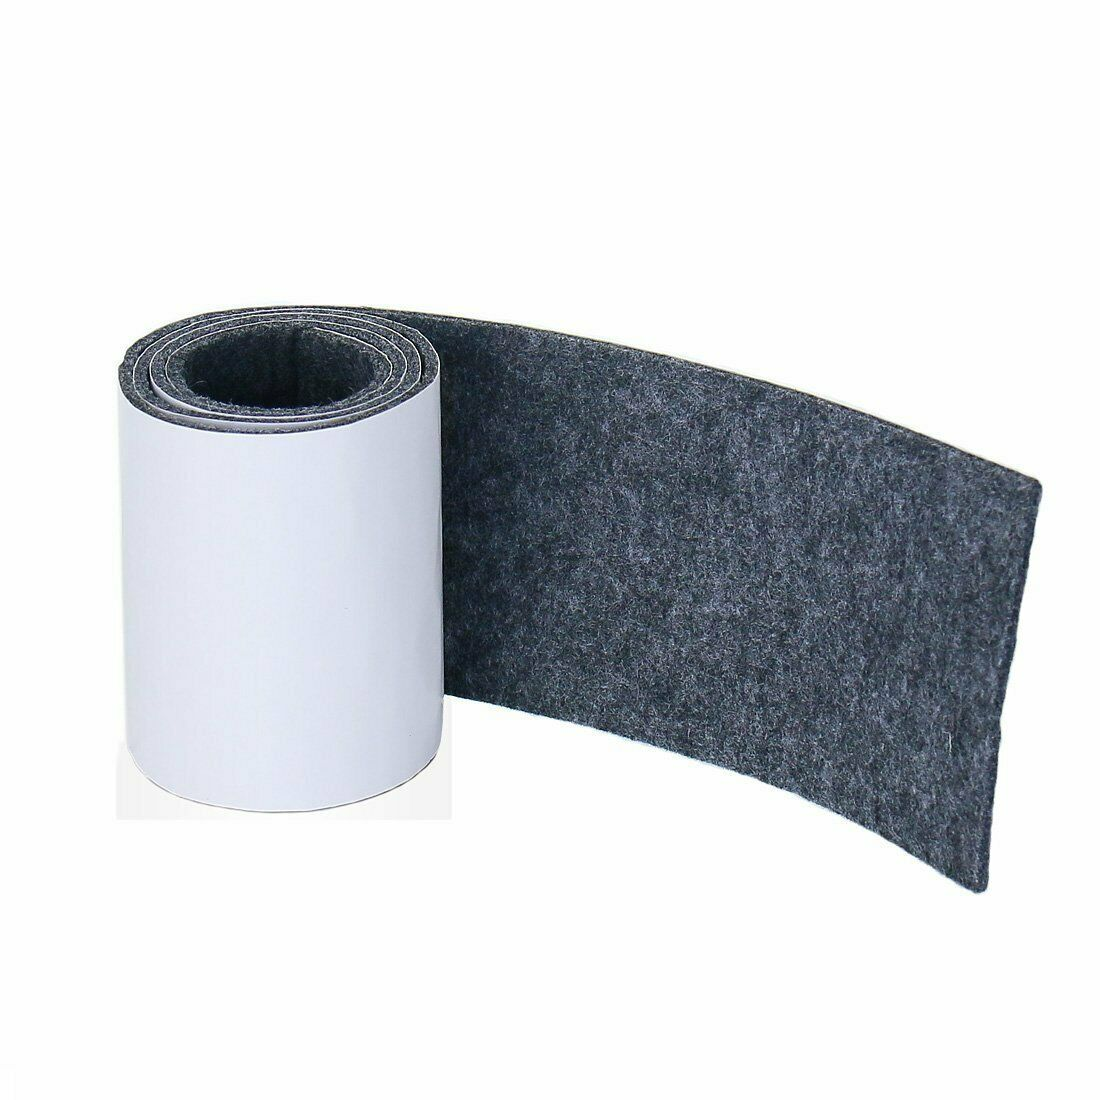 Self-Stick Heavy Duty Felt Strip Roll for Hard Surfaces hgf 1//2 inch x 60 inch